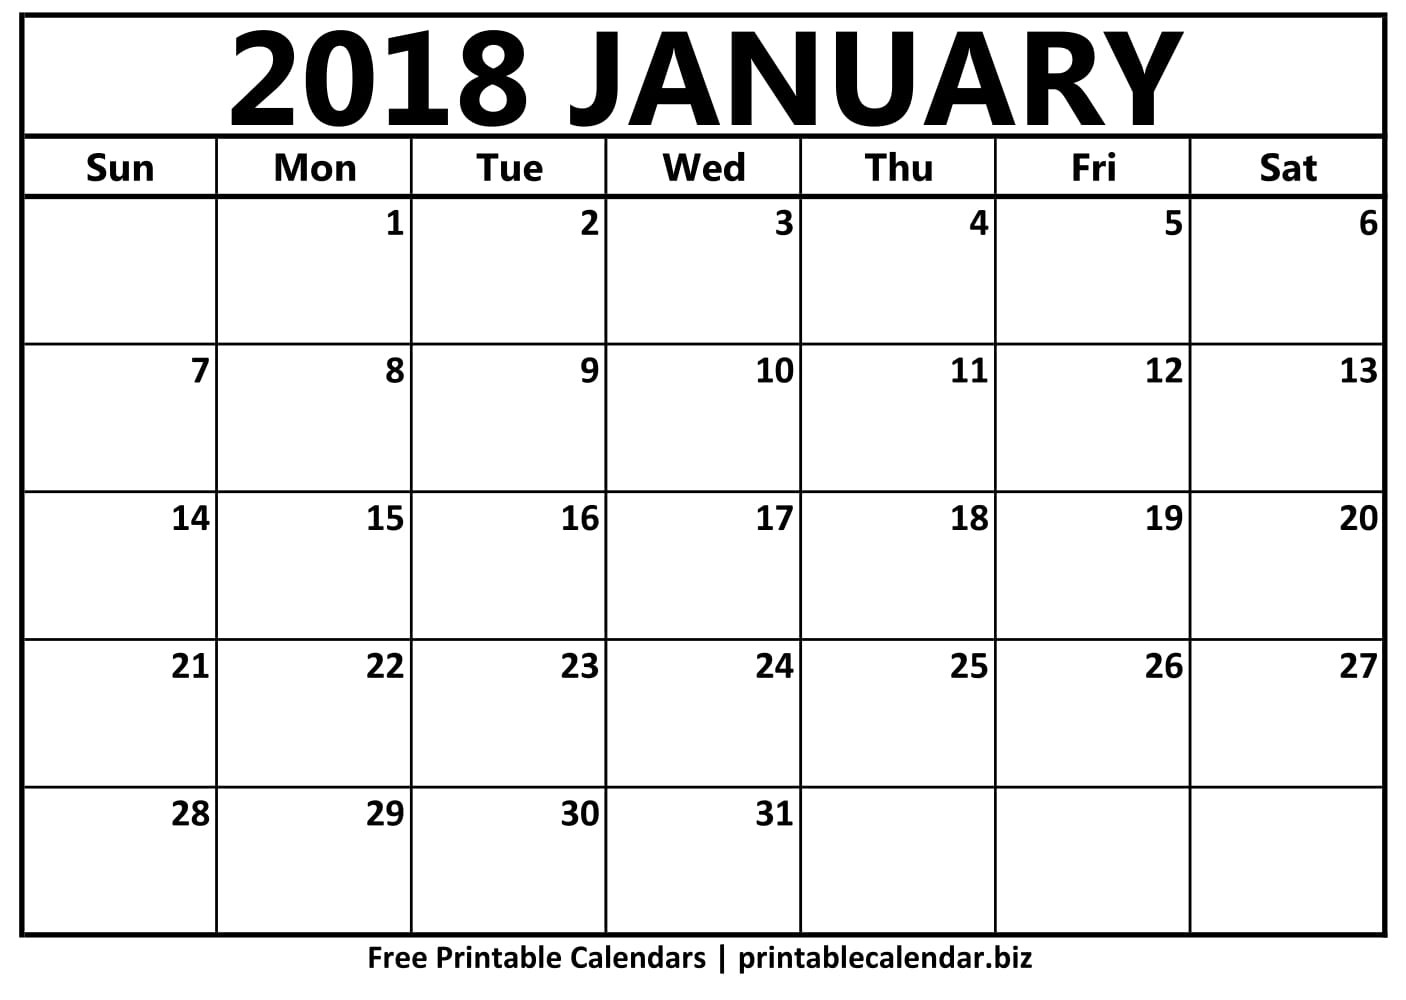 Printable January 2018 Calendar - Printable Calendar & Birthday Cards regarding Picture Of A January Calender